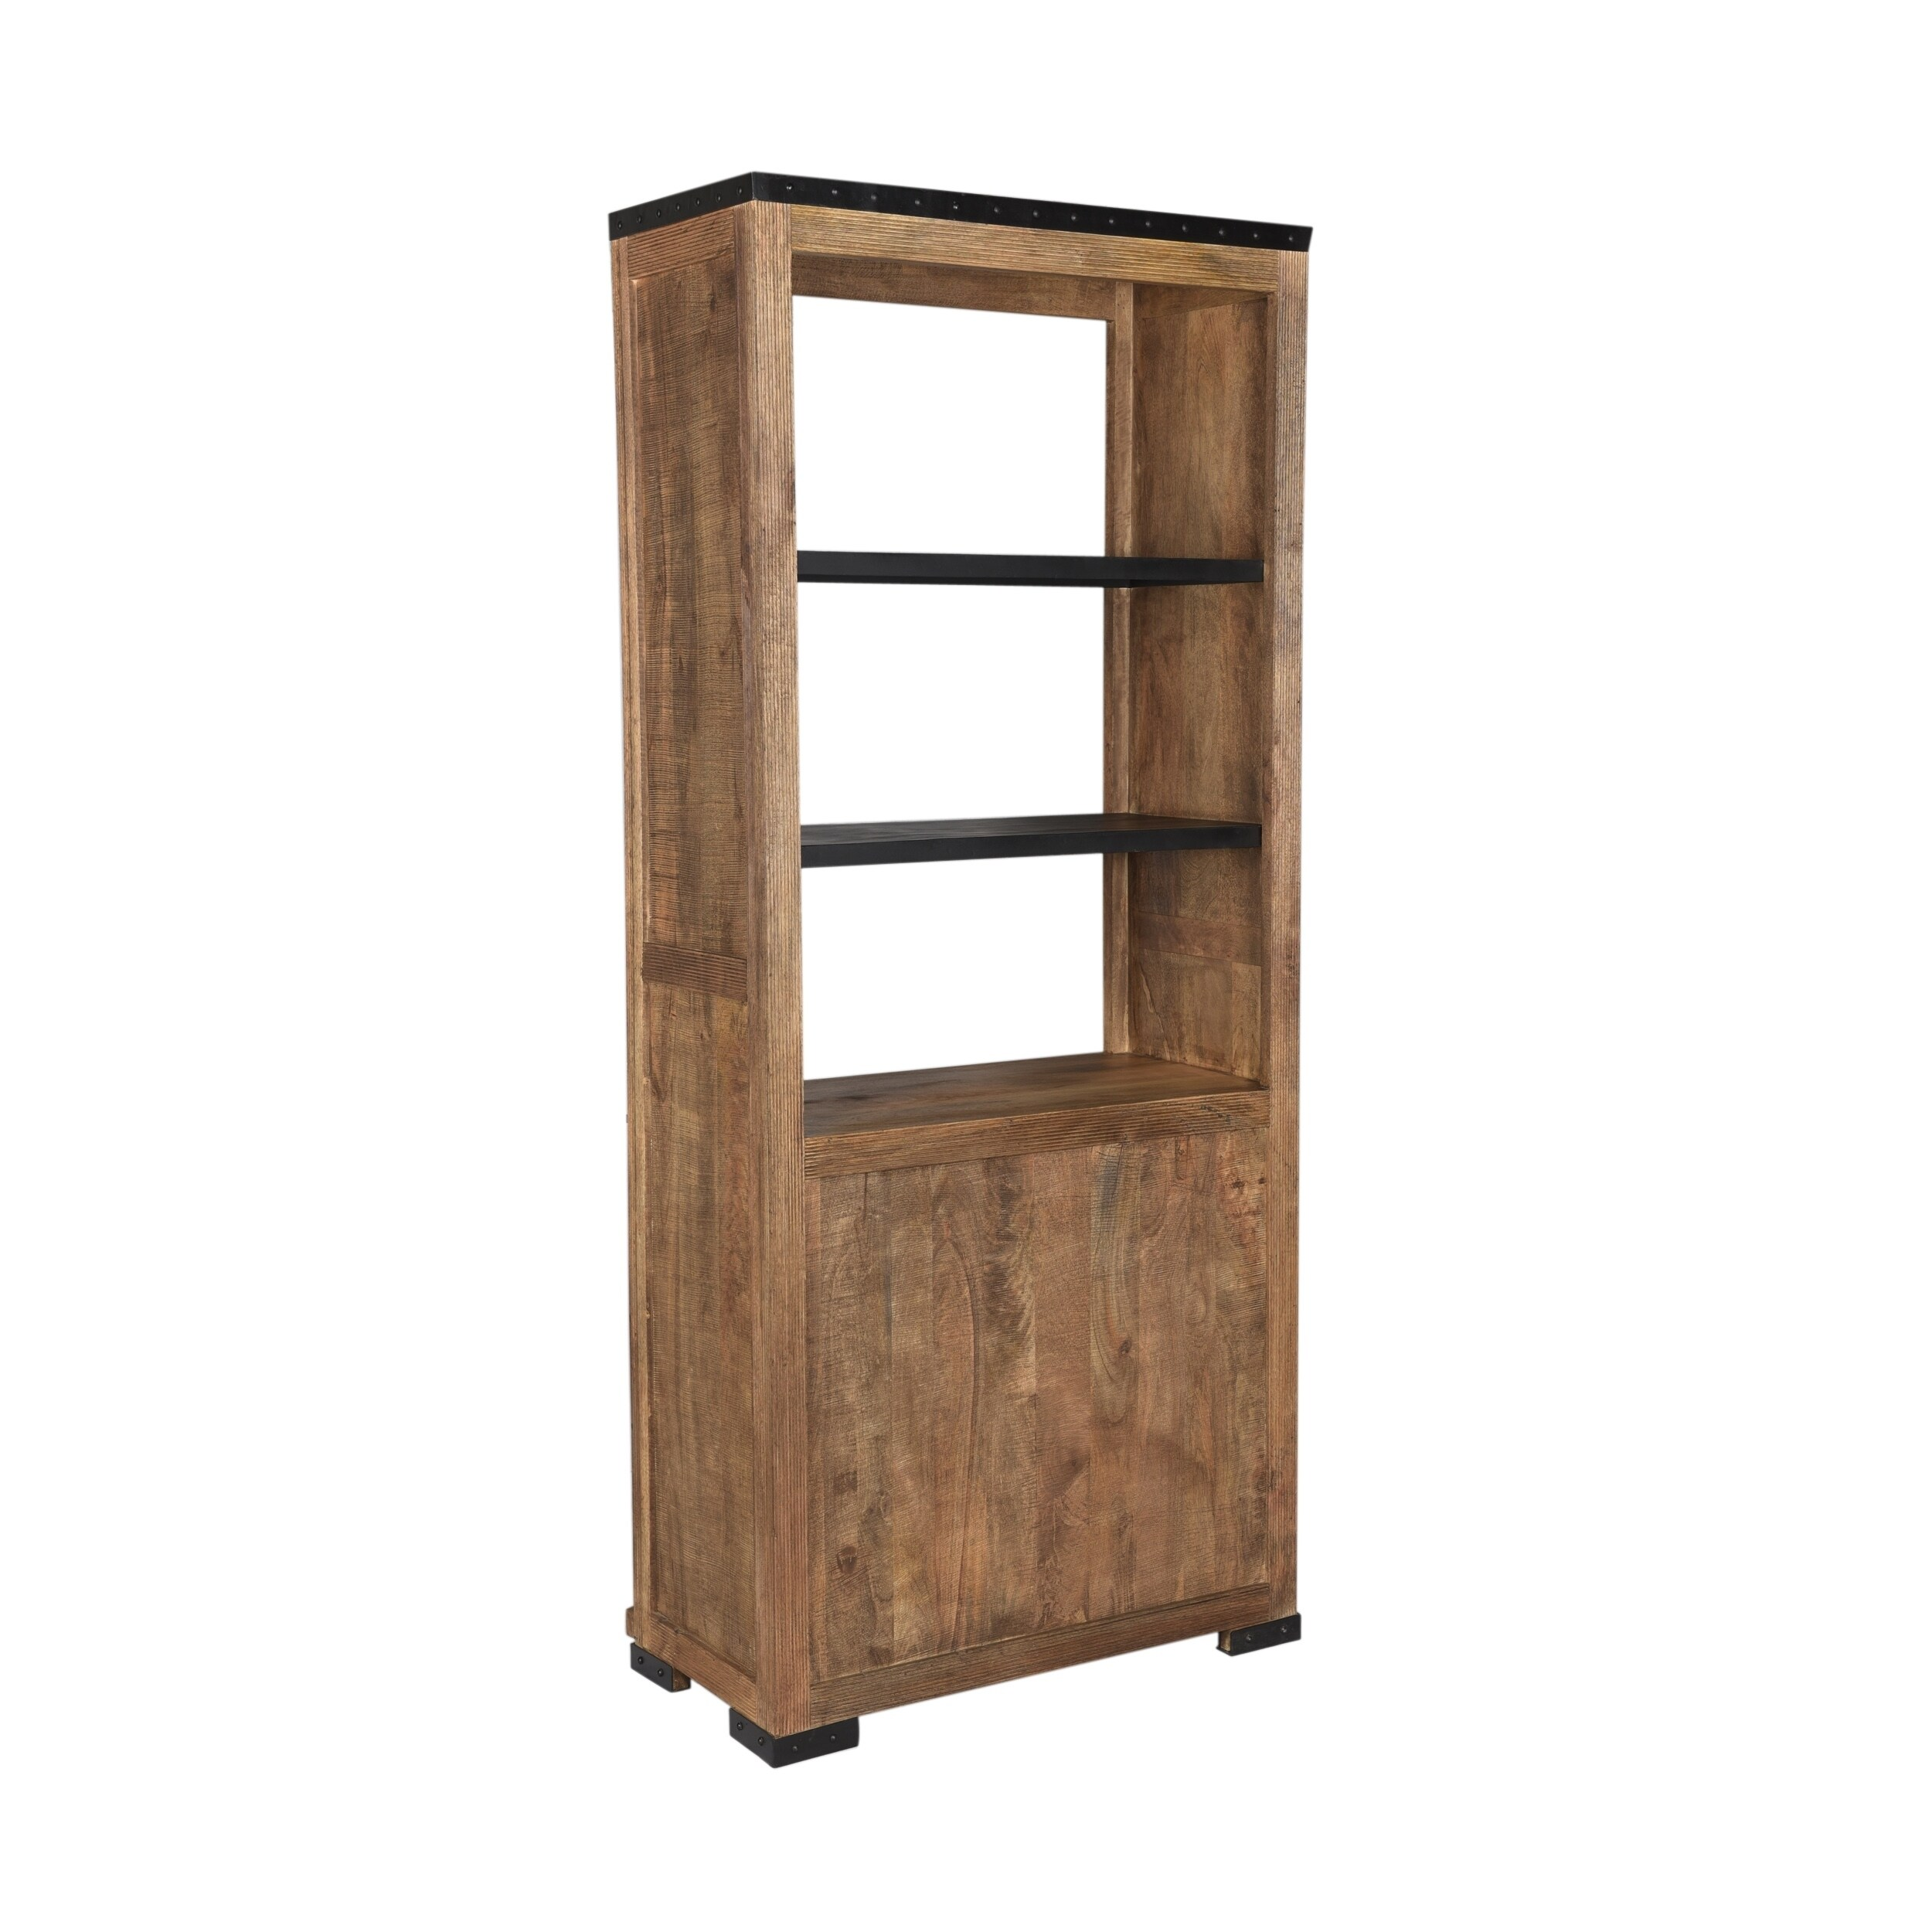 Cabrini Modern Industrial Mango Wood Bookcase By Christopher Knight Home 35 50 W X 18 50 D X 83 00 H